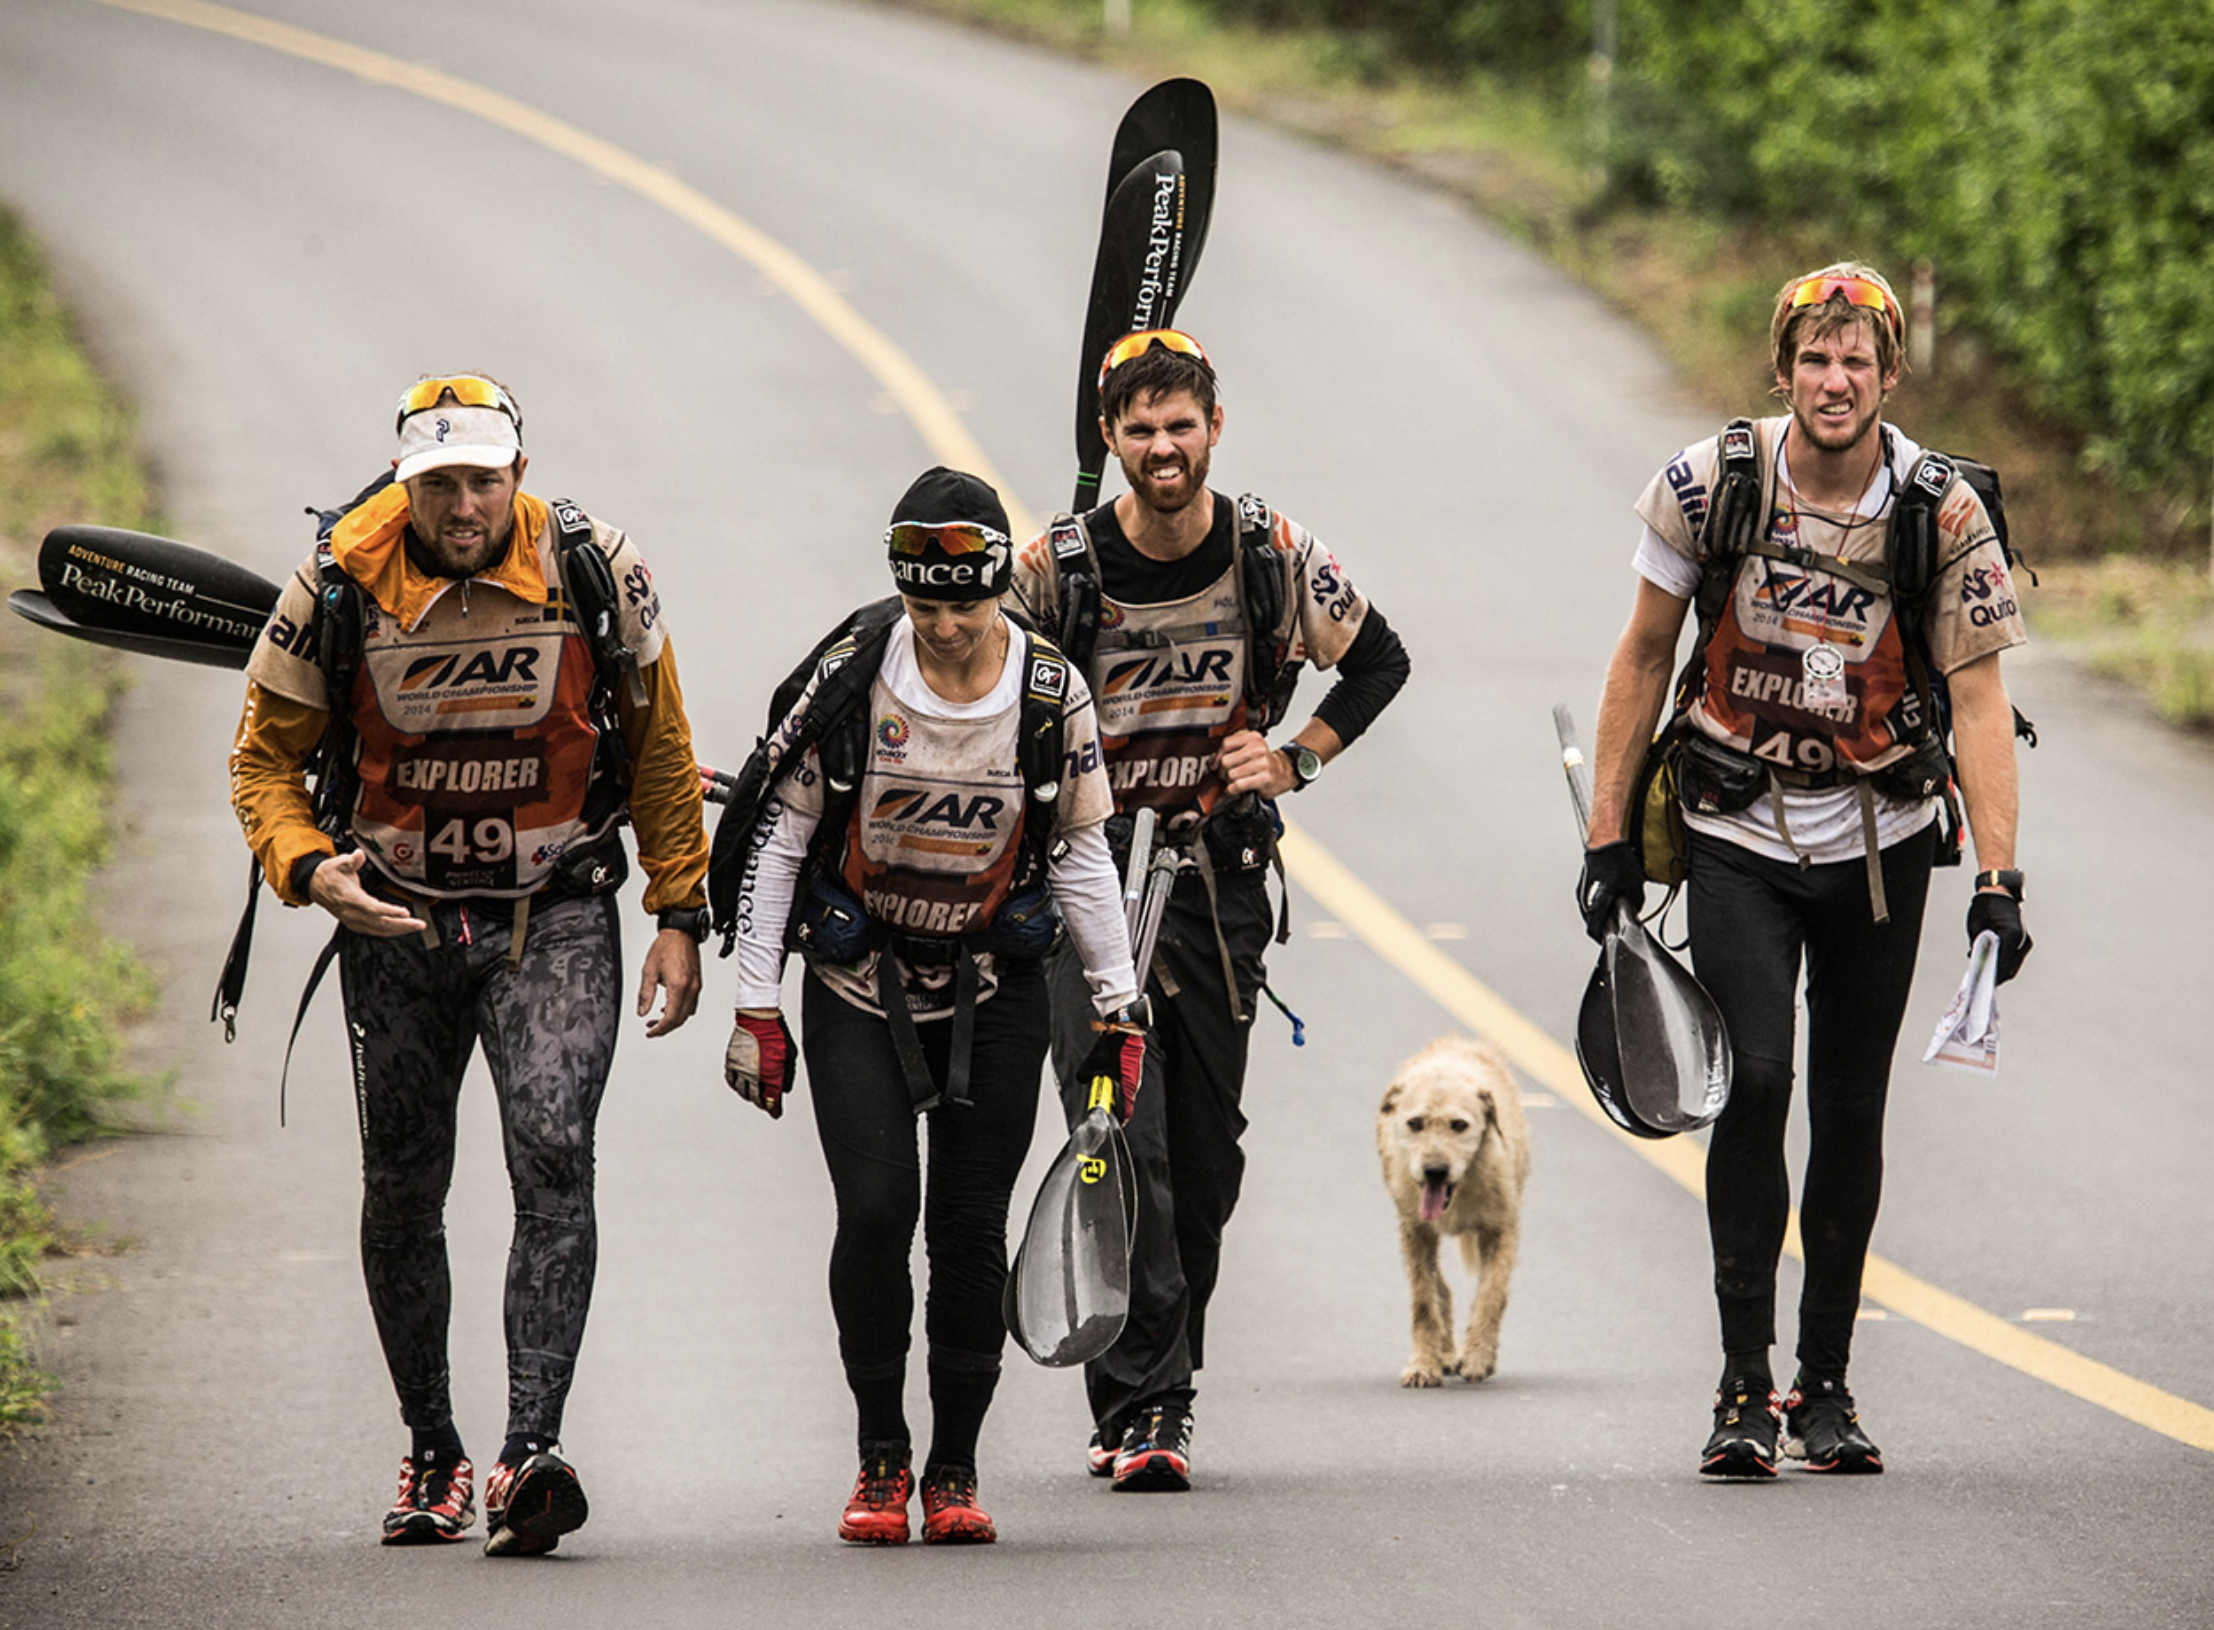 Team Peak Performance Approaching the finish line. Photo credit ESPN